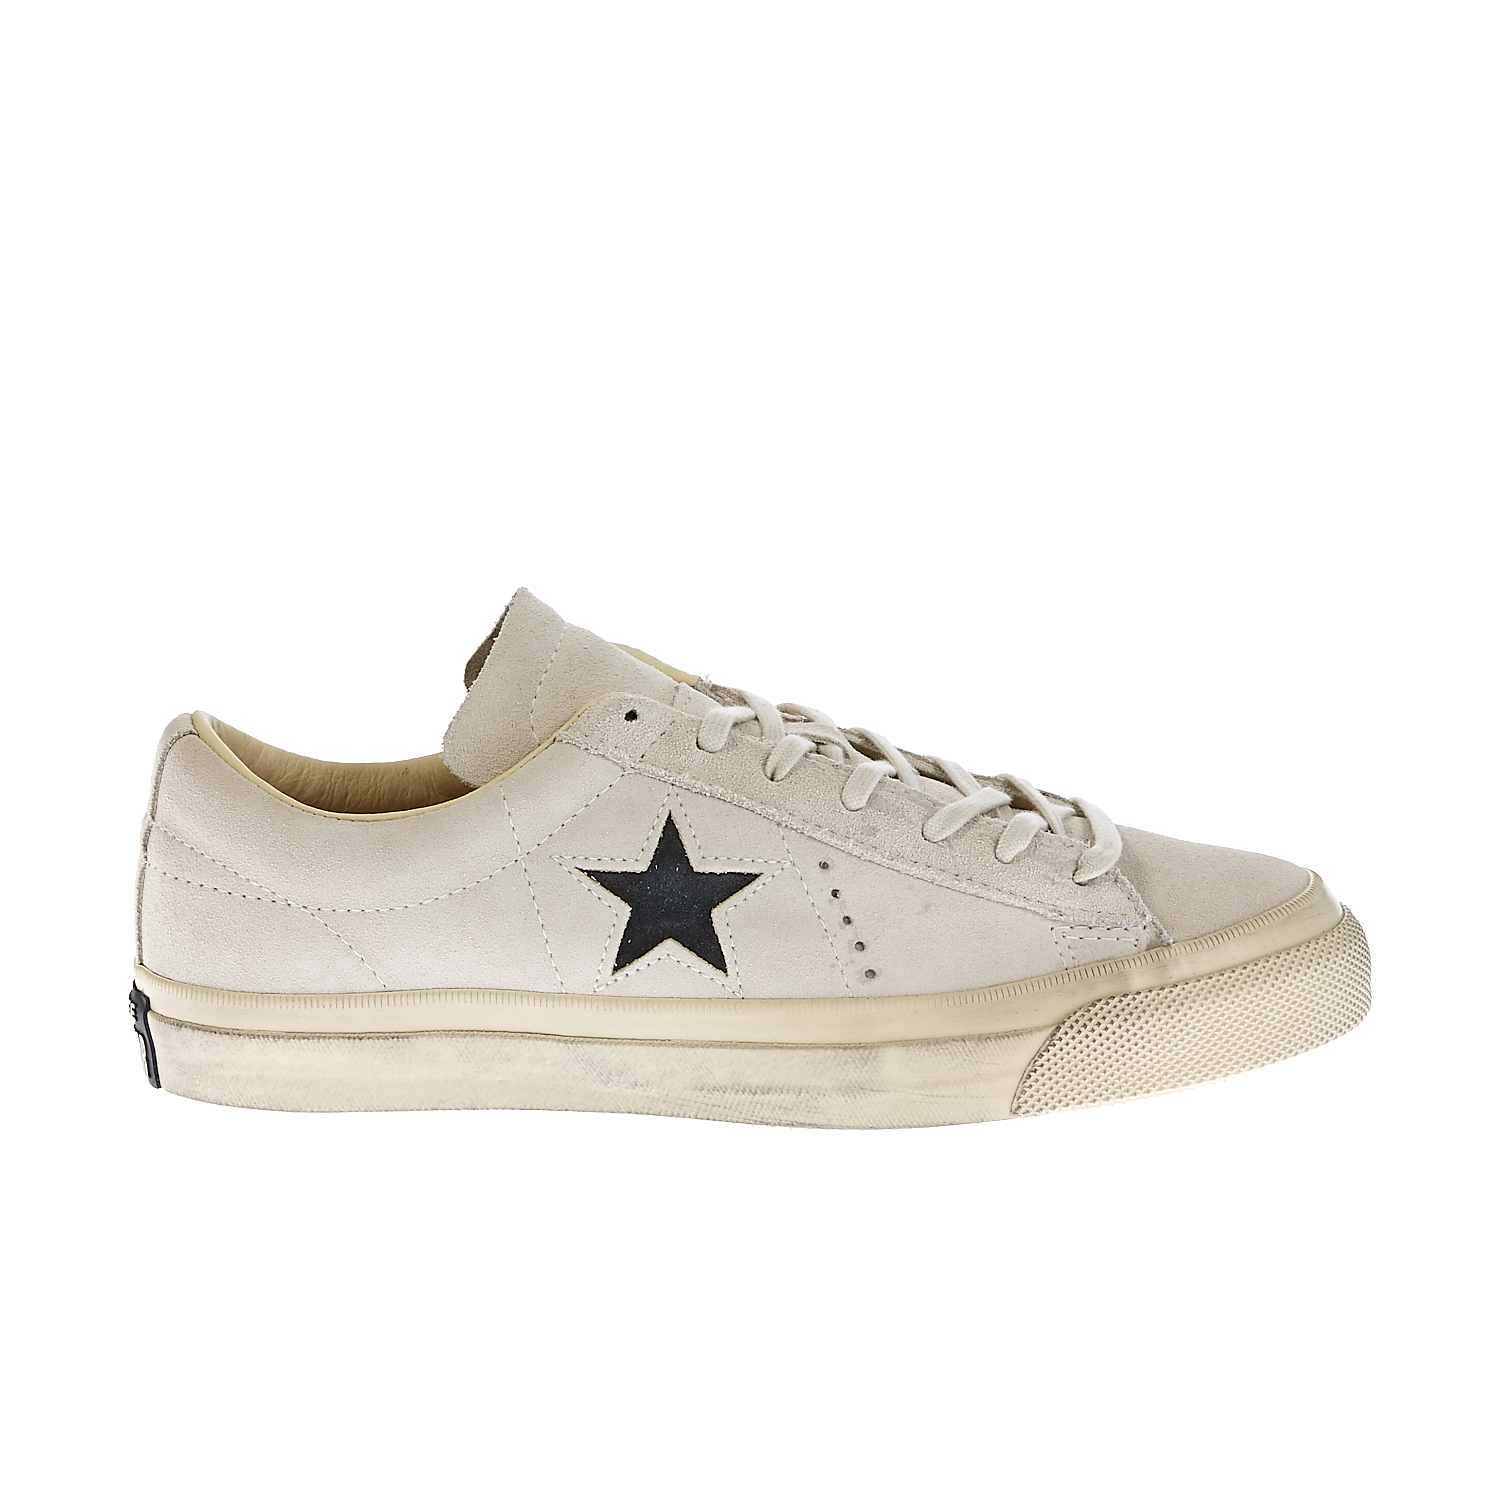 CONVERSE - Unisex παπούτσια One Star Burnished μπεζ γυναικεία παπούτσια sneakers